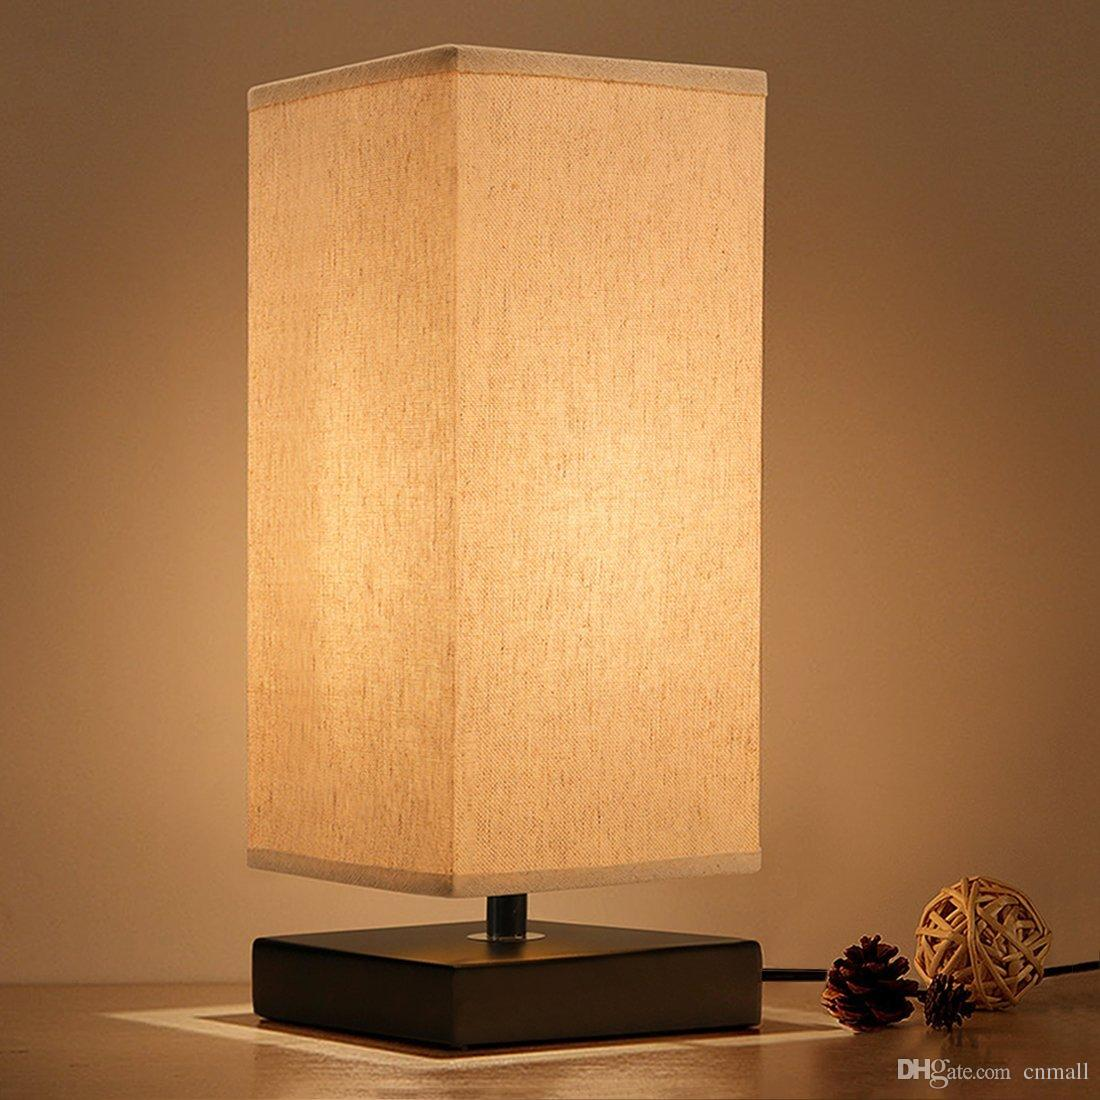 strange lamp from northern products acacia imports thailand wood d table